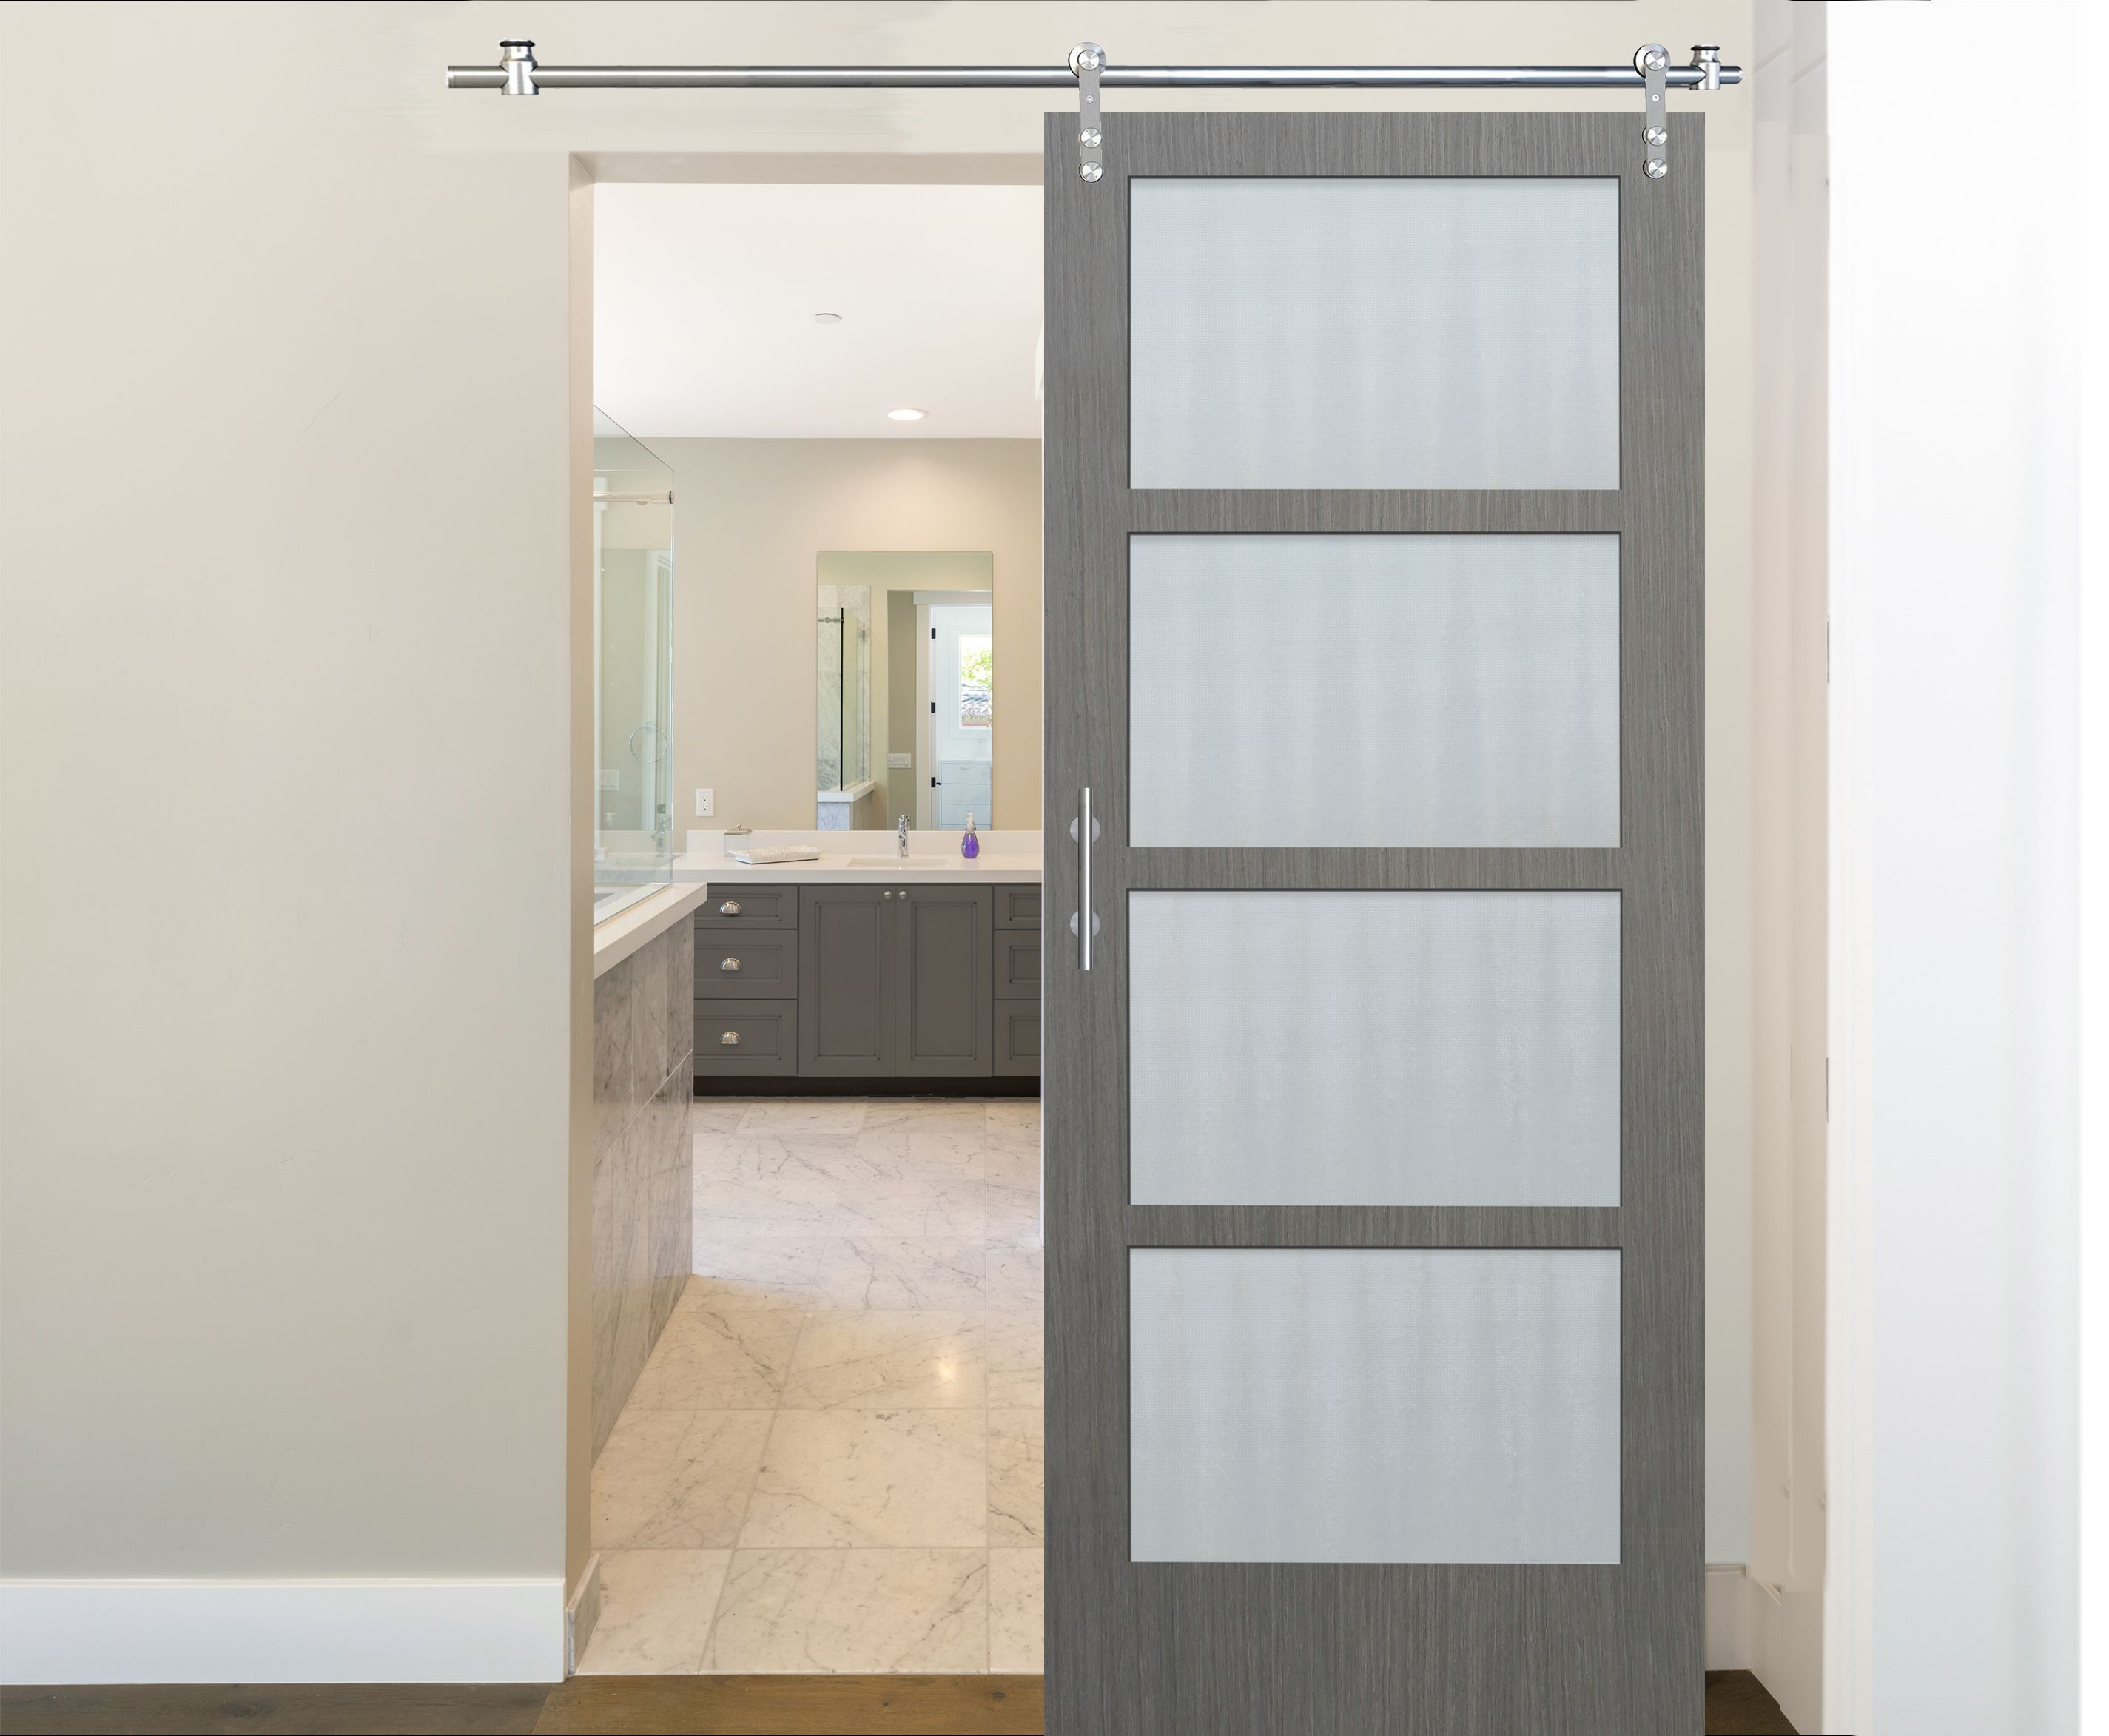 Pacific Entries 36 In X 84 In 4 Lite Driftwood Clear Coat Interior Sliding Barn Door With Round Stainless Steel Hardware Kit Cdr2044 3684 20 The Home Depot Barn Door Indoor Barn Doors Interior